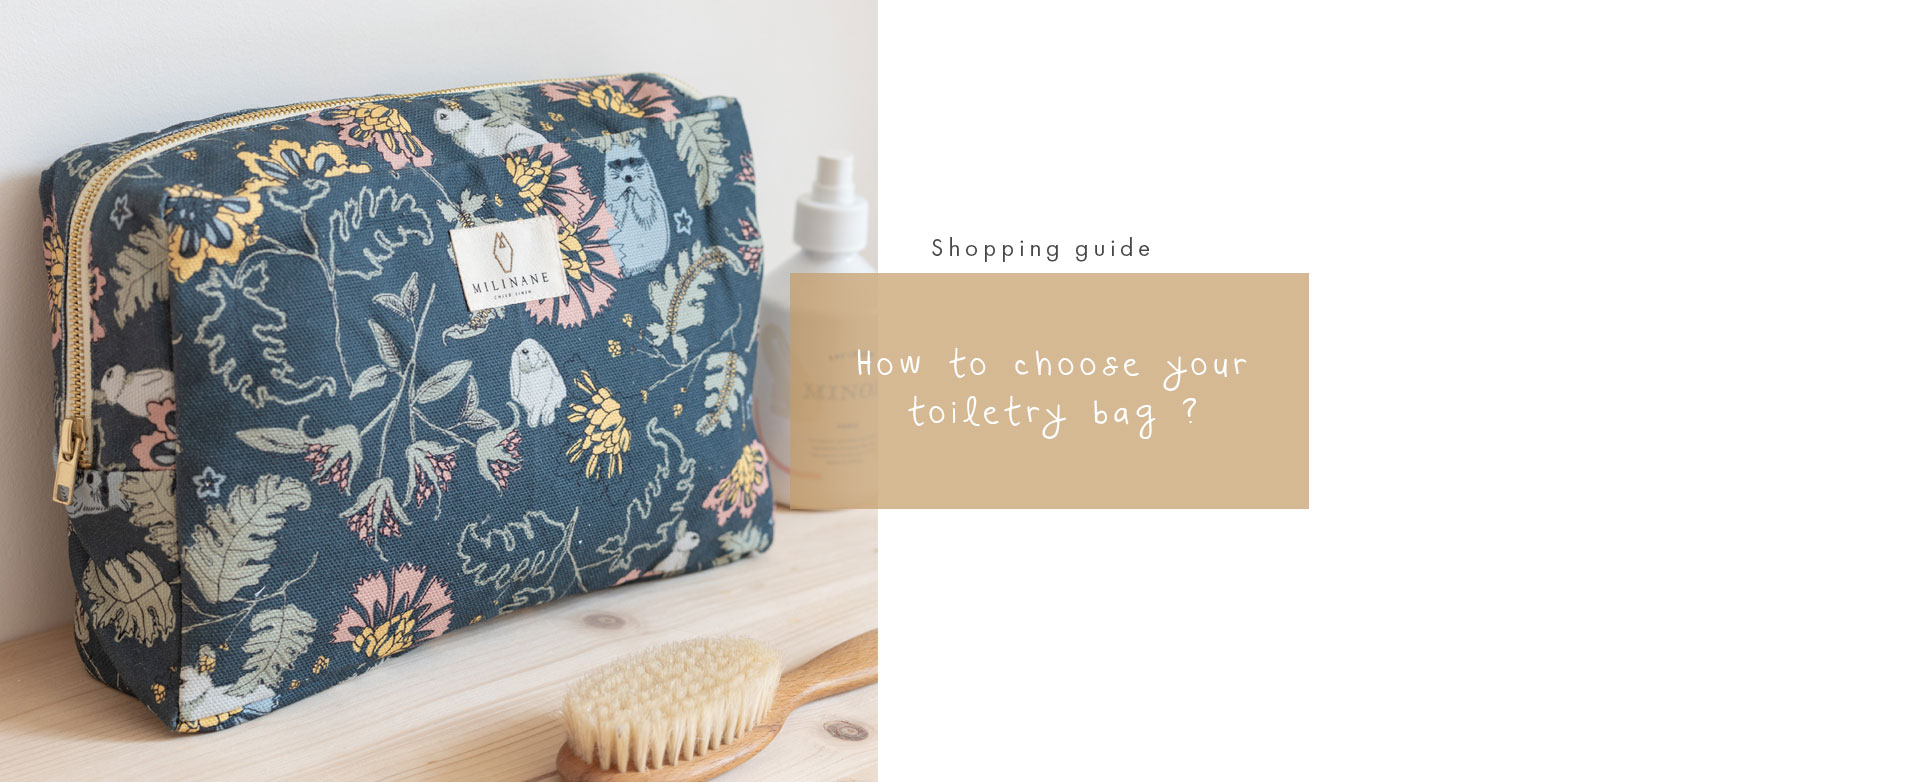 How to choose the kids toiletry bag